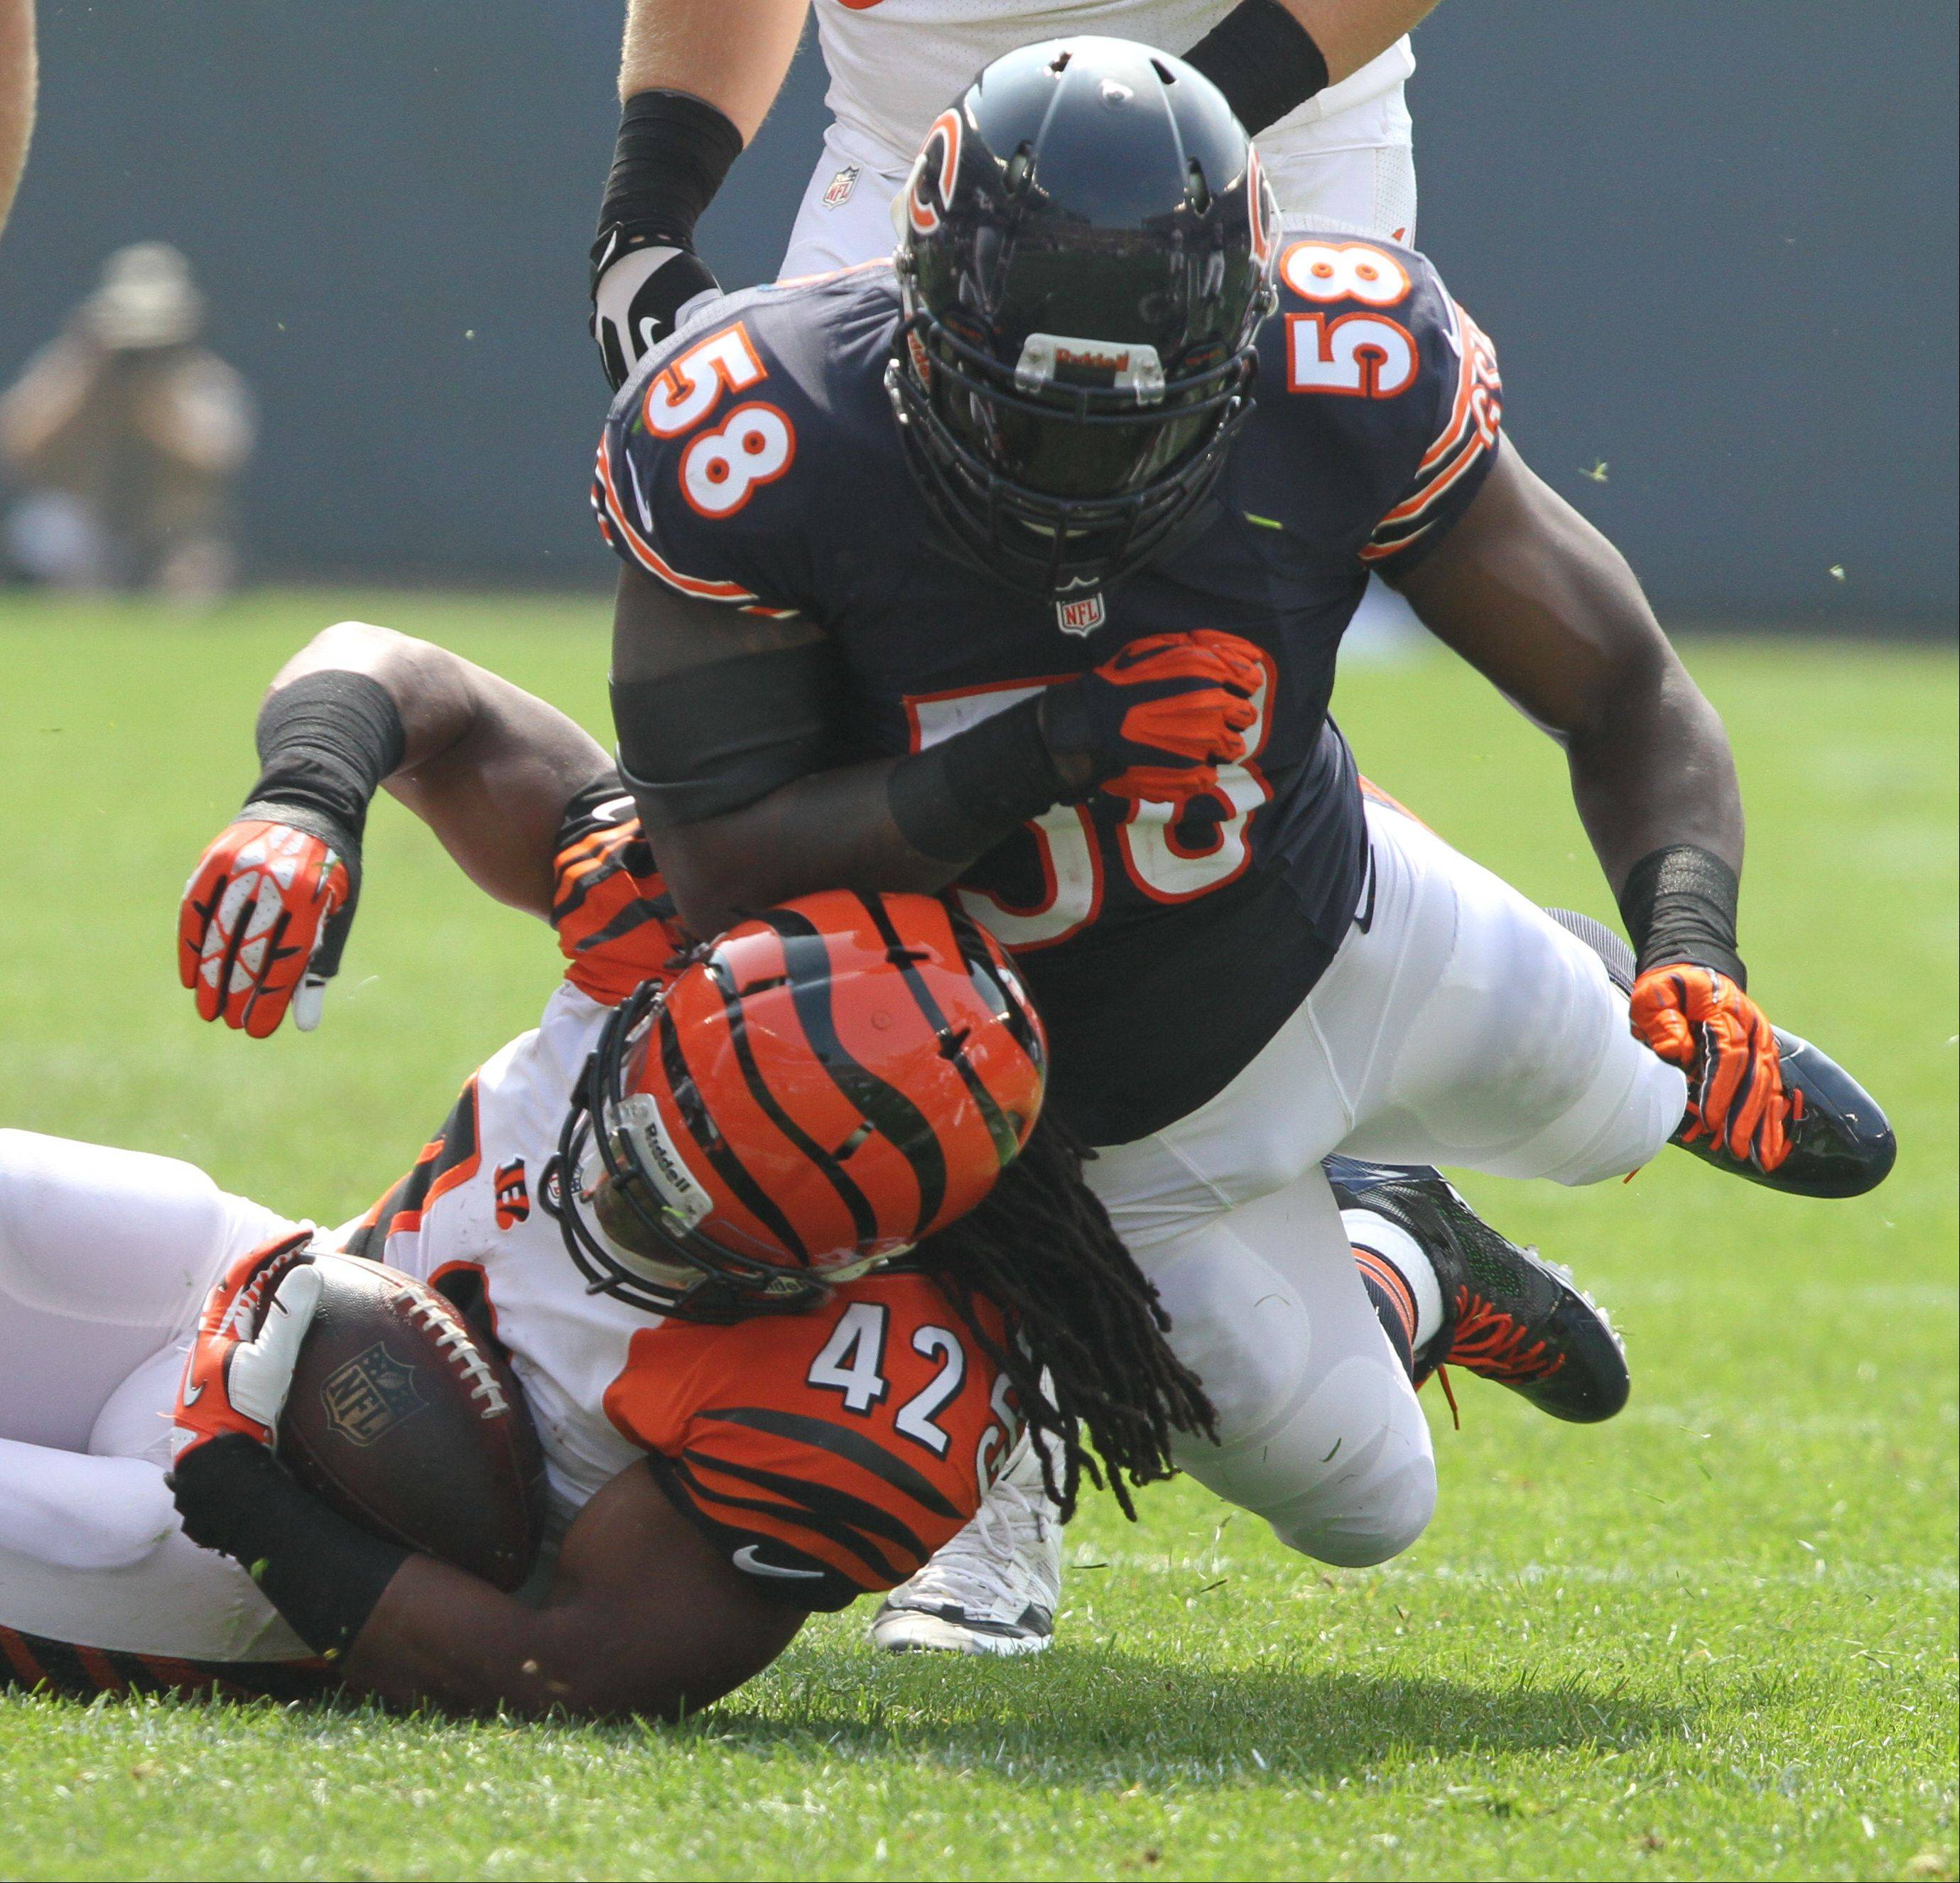 Chicago Bears outside linebacker D.J. Williams lays a hit on Cincinnati Bengals running back BenJarvus Green-Ellis during their opening day game against the Cincinnati Bengals Sunday at Soldier Field in Chicago.